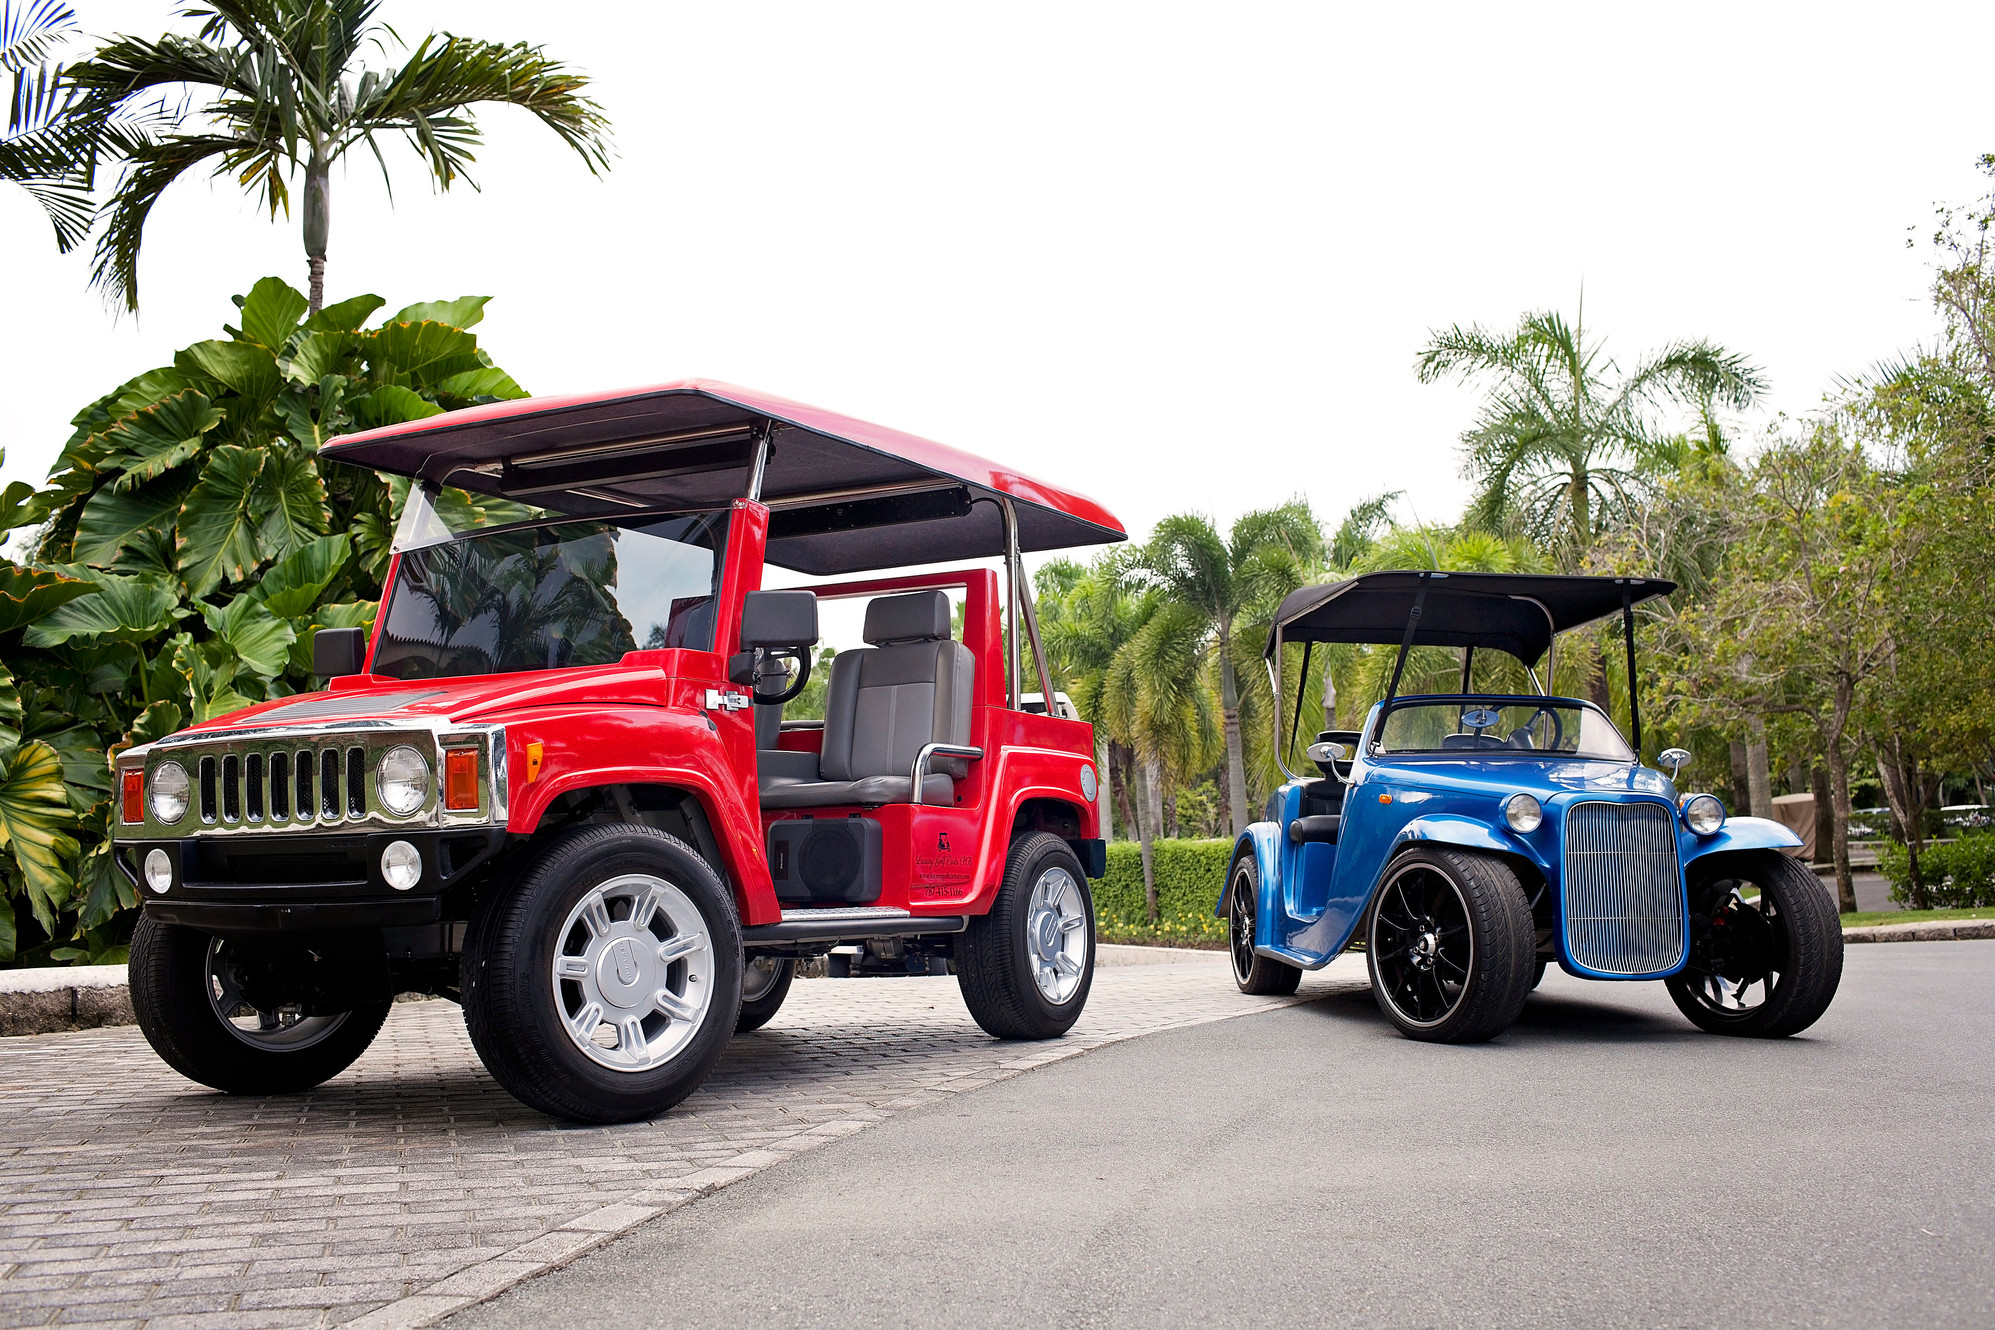 Frequently Asked Questions about Golf Carts